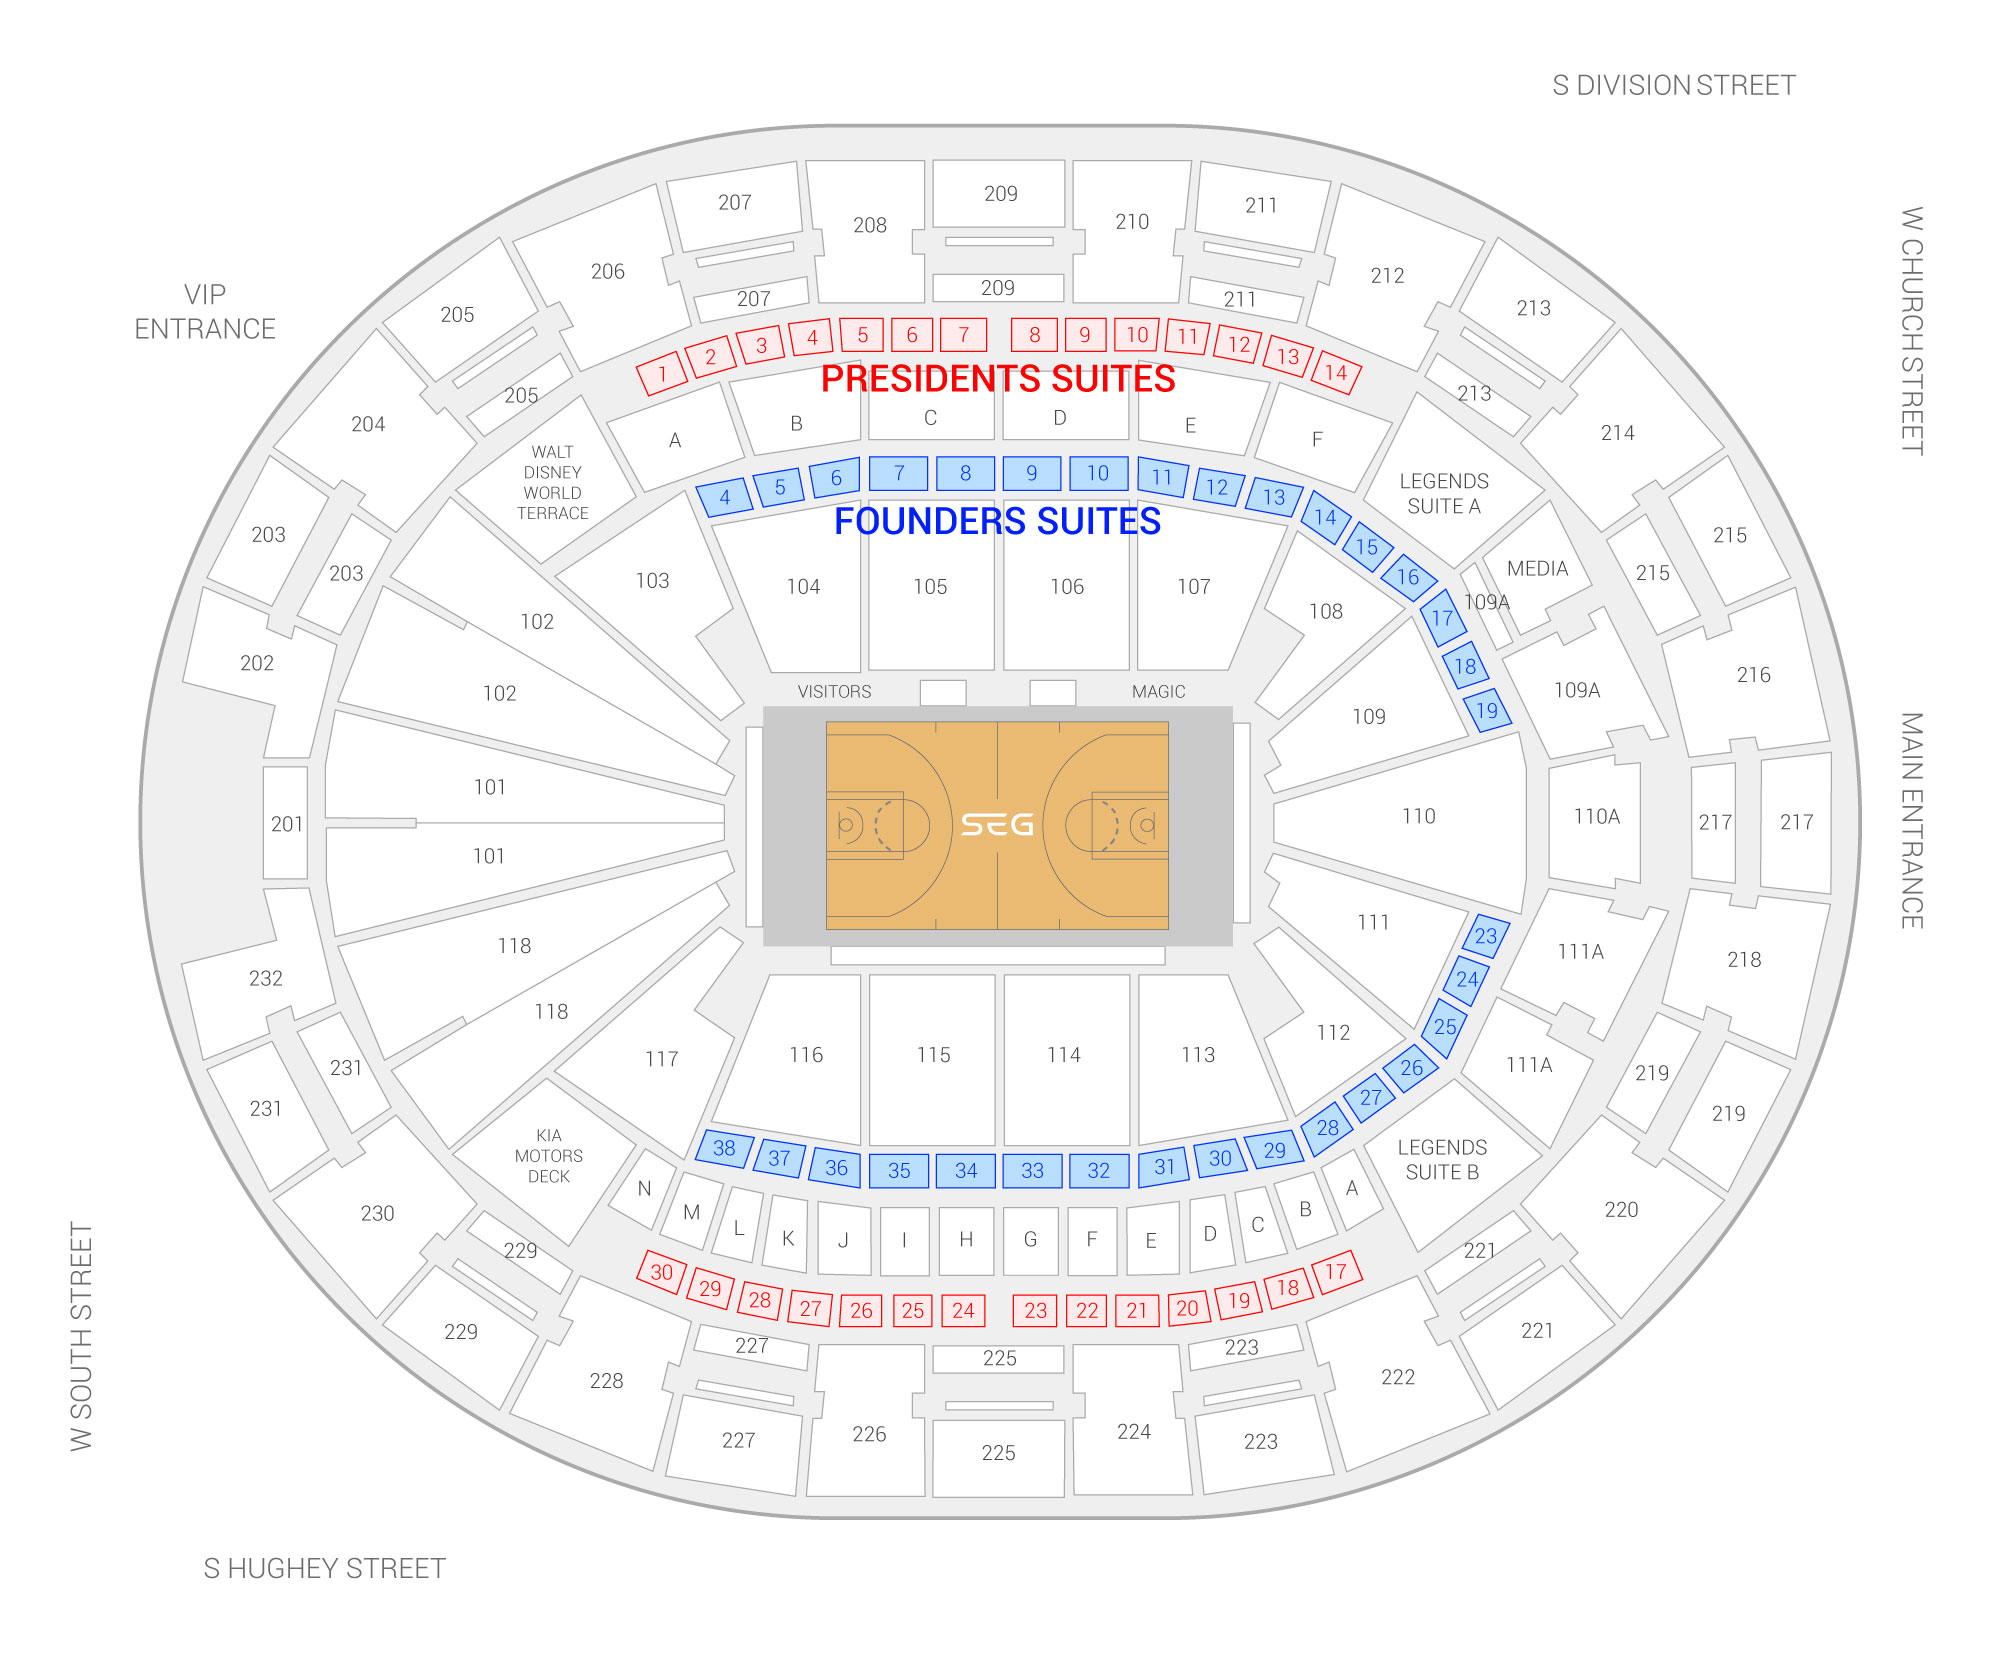 Amway Center / Orlando Magic Suite Map and Seating Chart